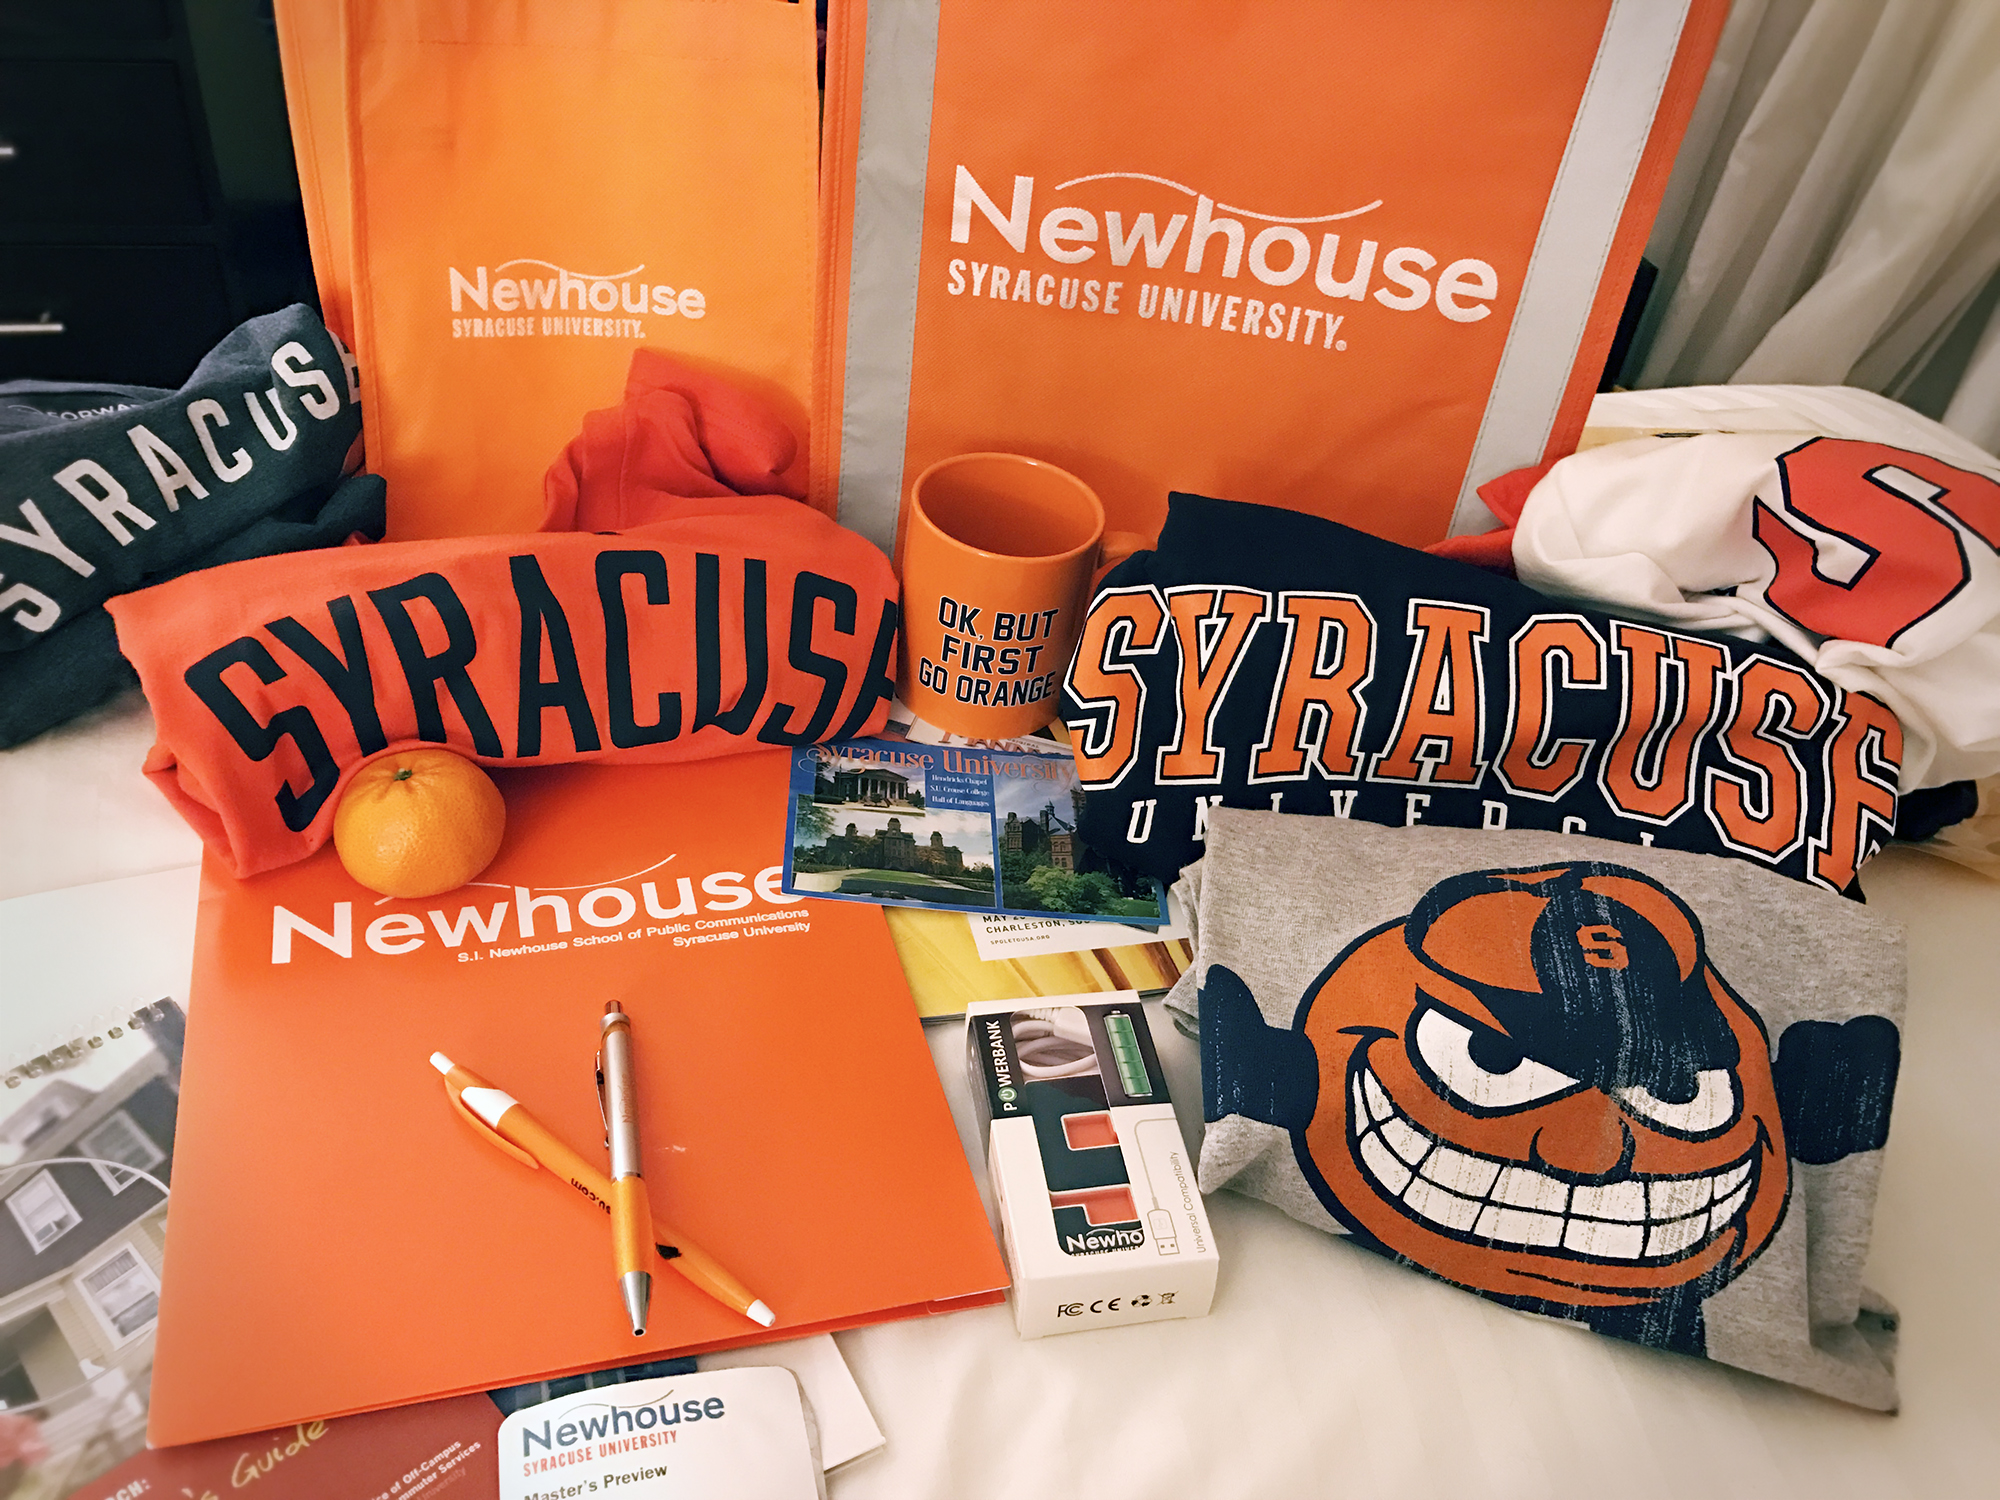 Geena Matuson (@geenamatuson) at Syracuse University Newhouse Masters Programs accepted students 'Preview Day', March 2017.